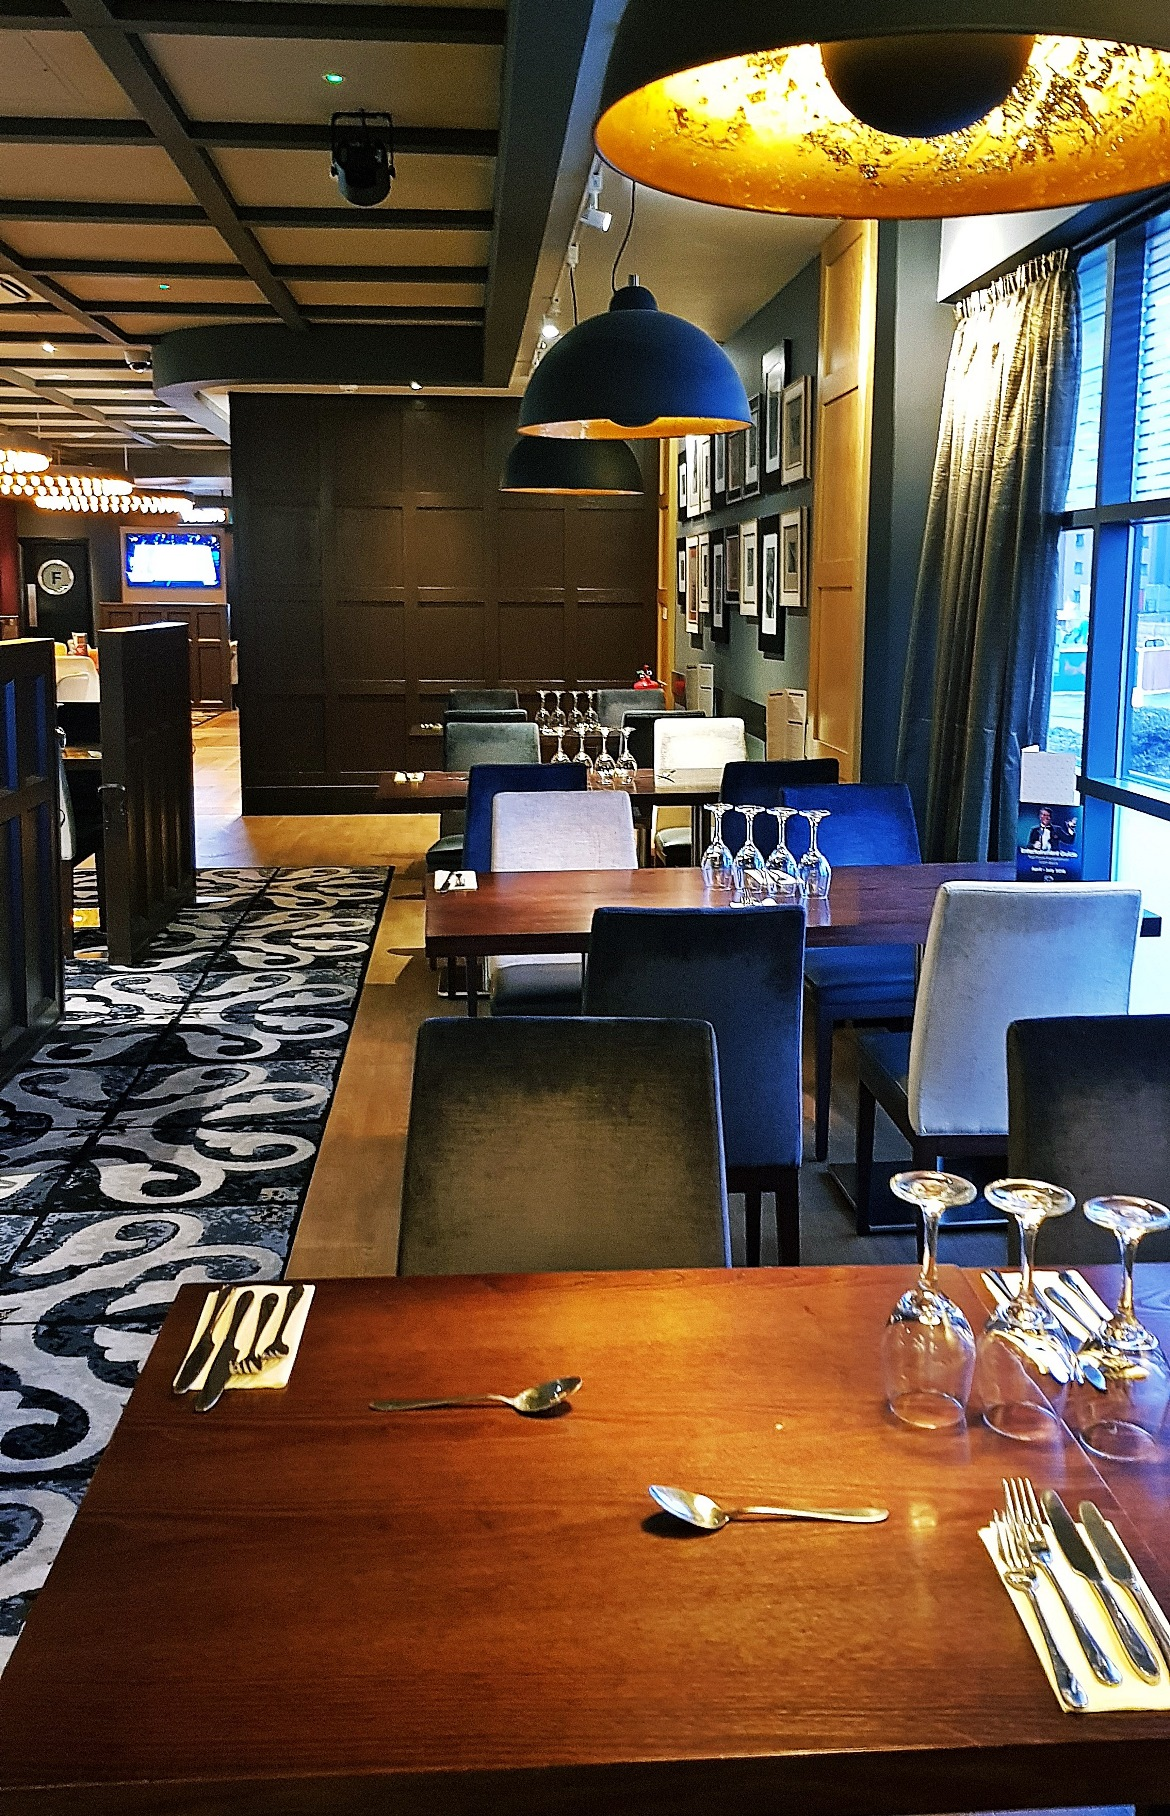 Tables in the restaurant - Grosvenor Casino Leeds review by BeckyBecky Blogs